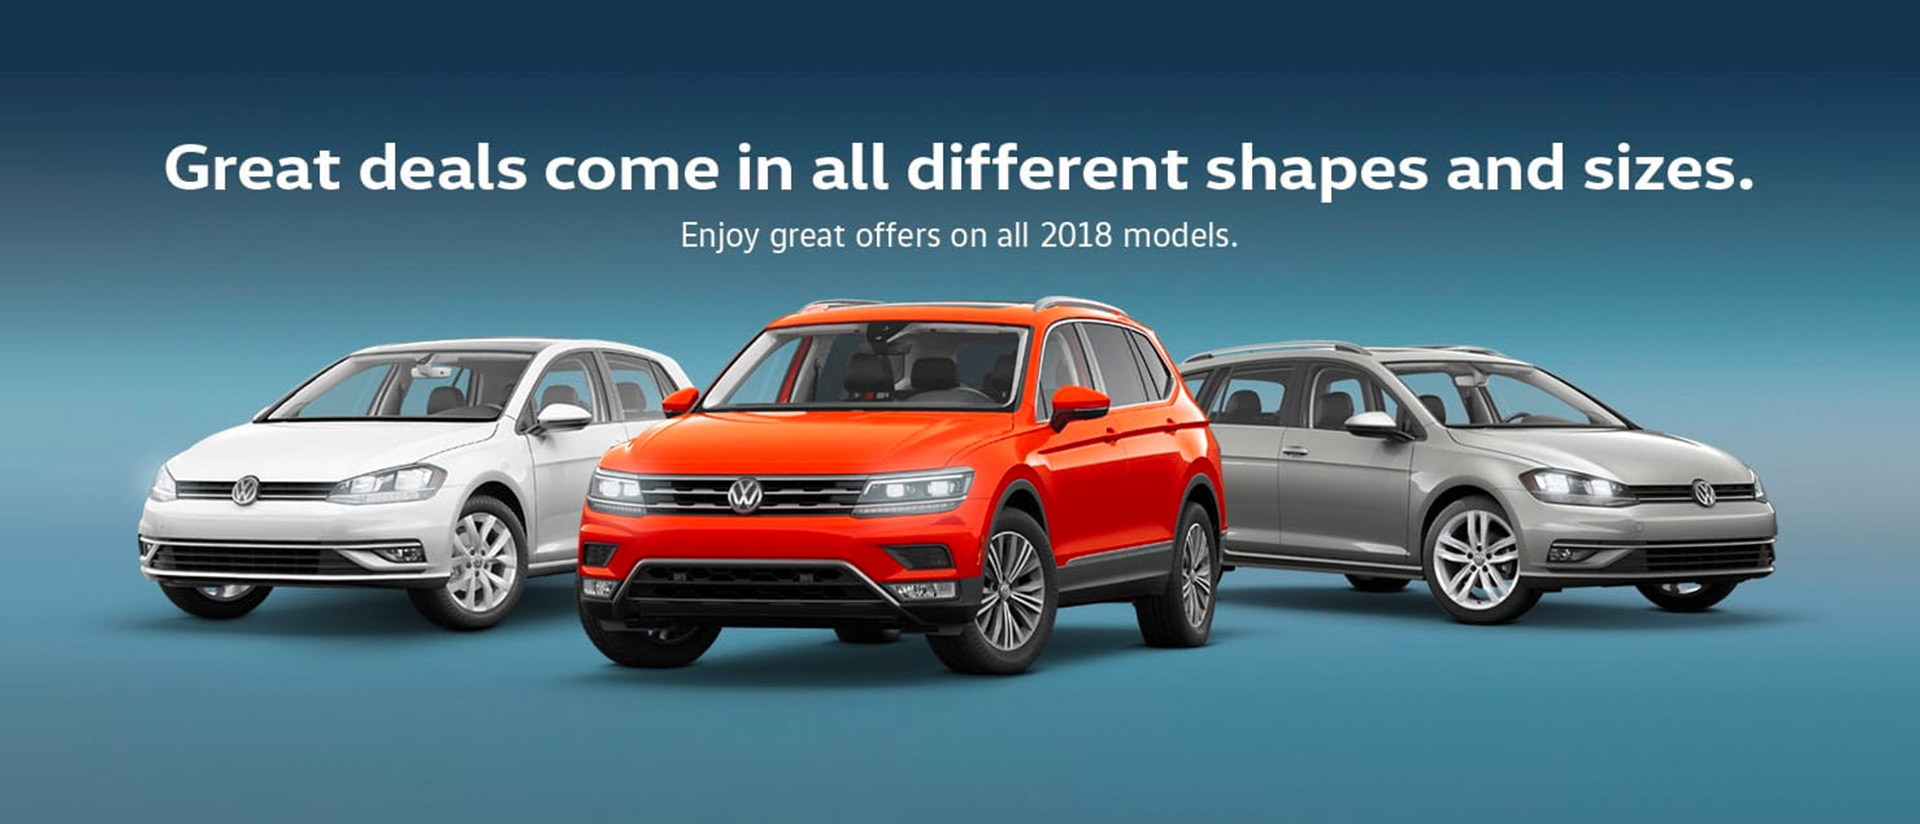 Volkswagen 2018 OEM Offer February